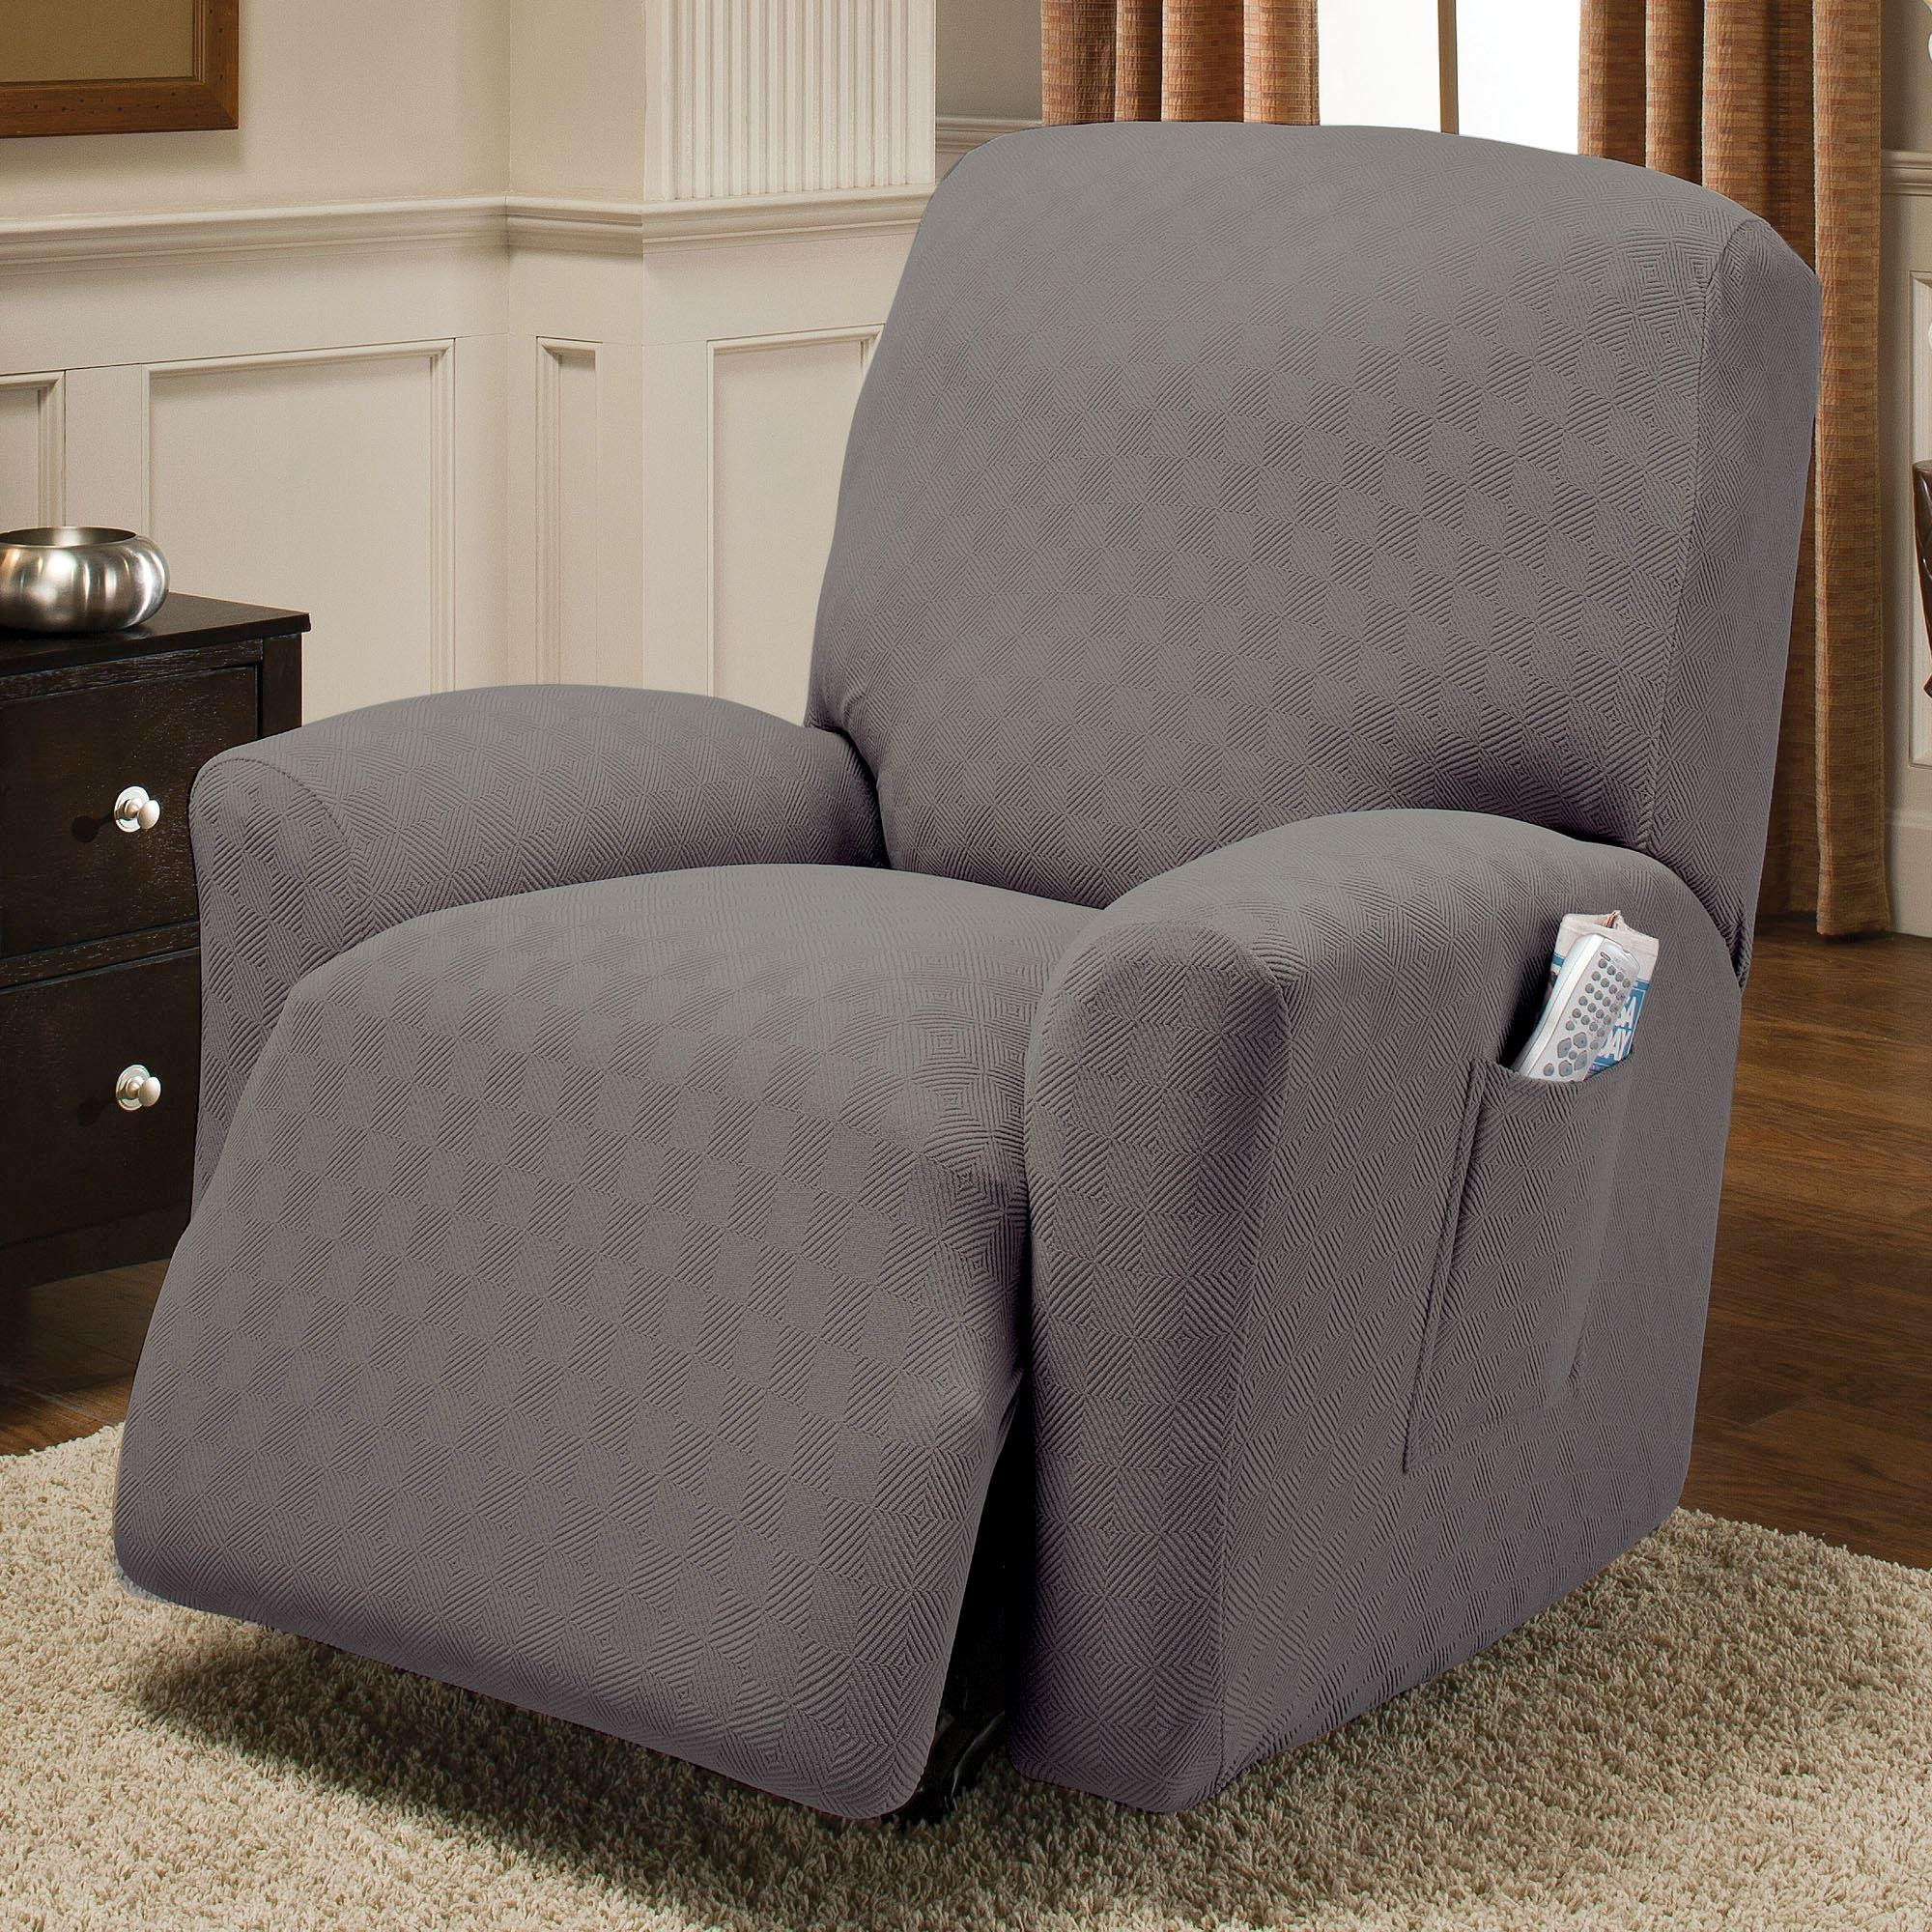 Featured Image of Stretch Covers For Recliners